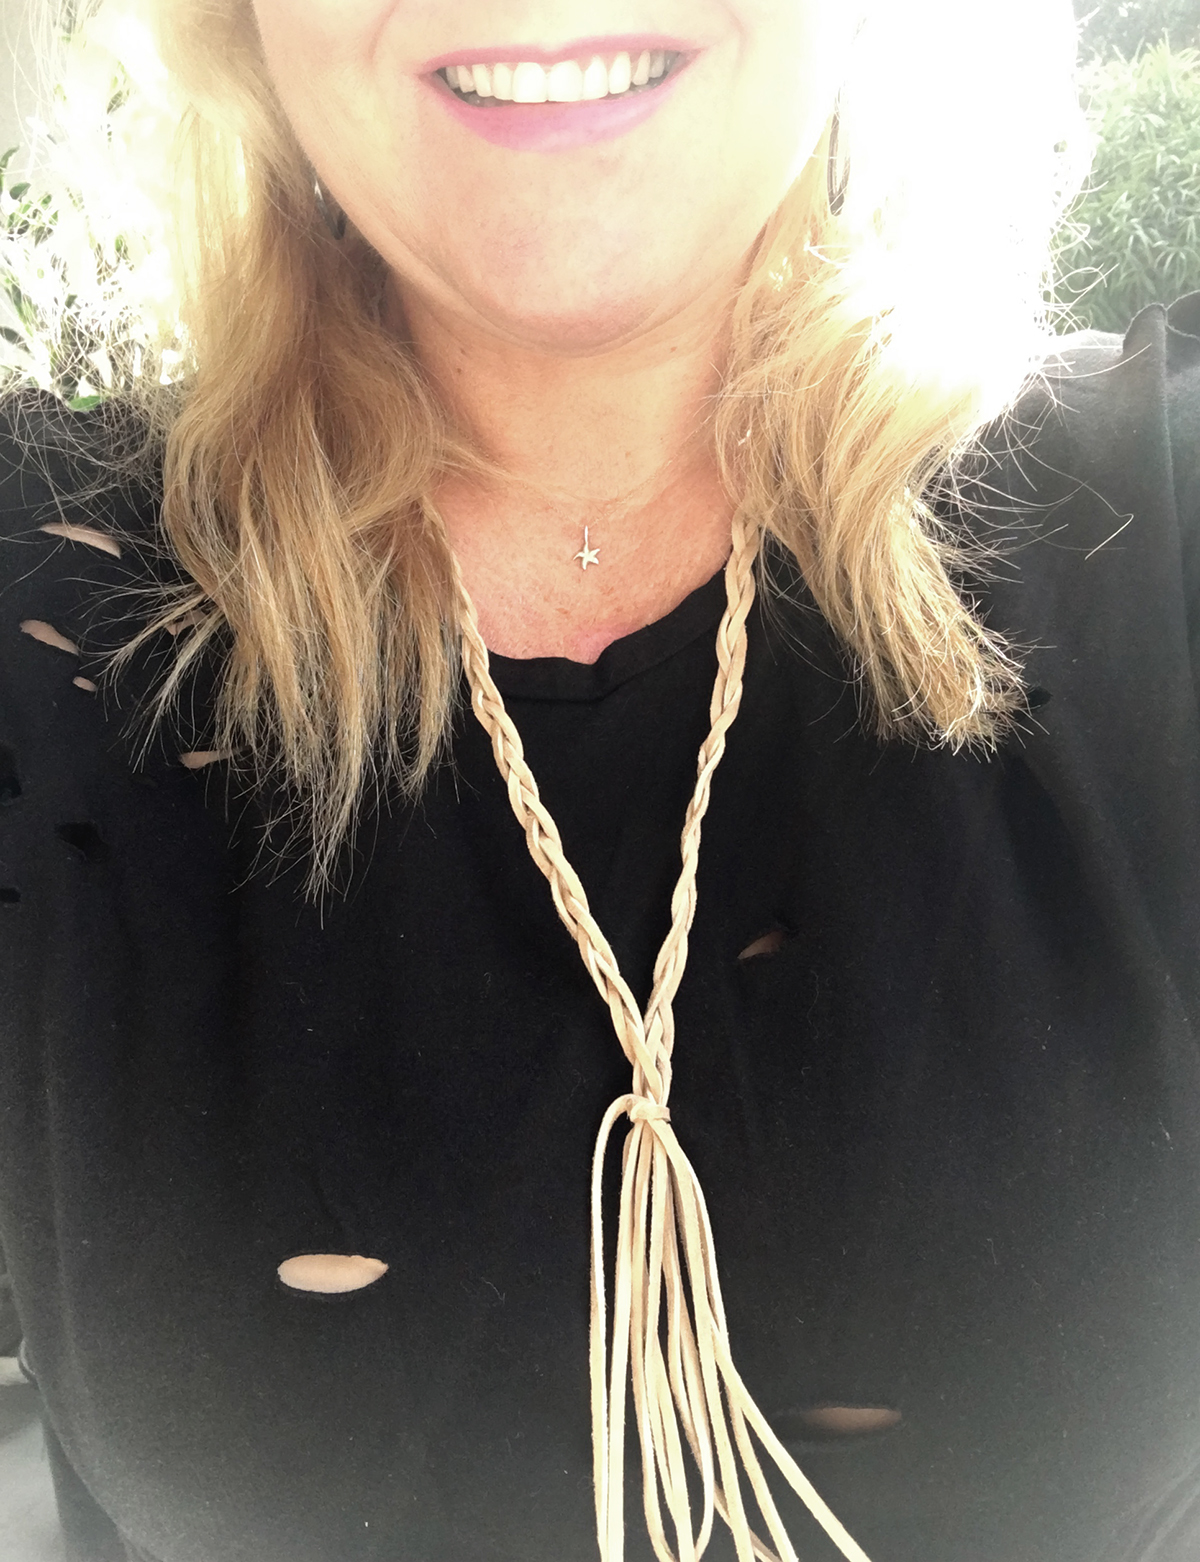 Here I am modeling my dreamcatcher necklace in light suede